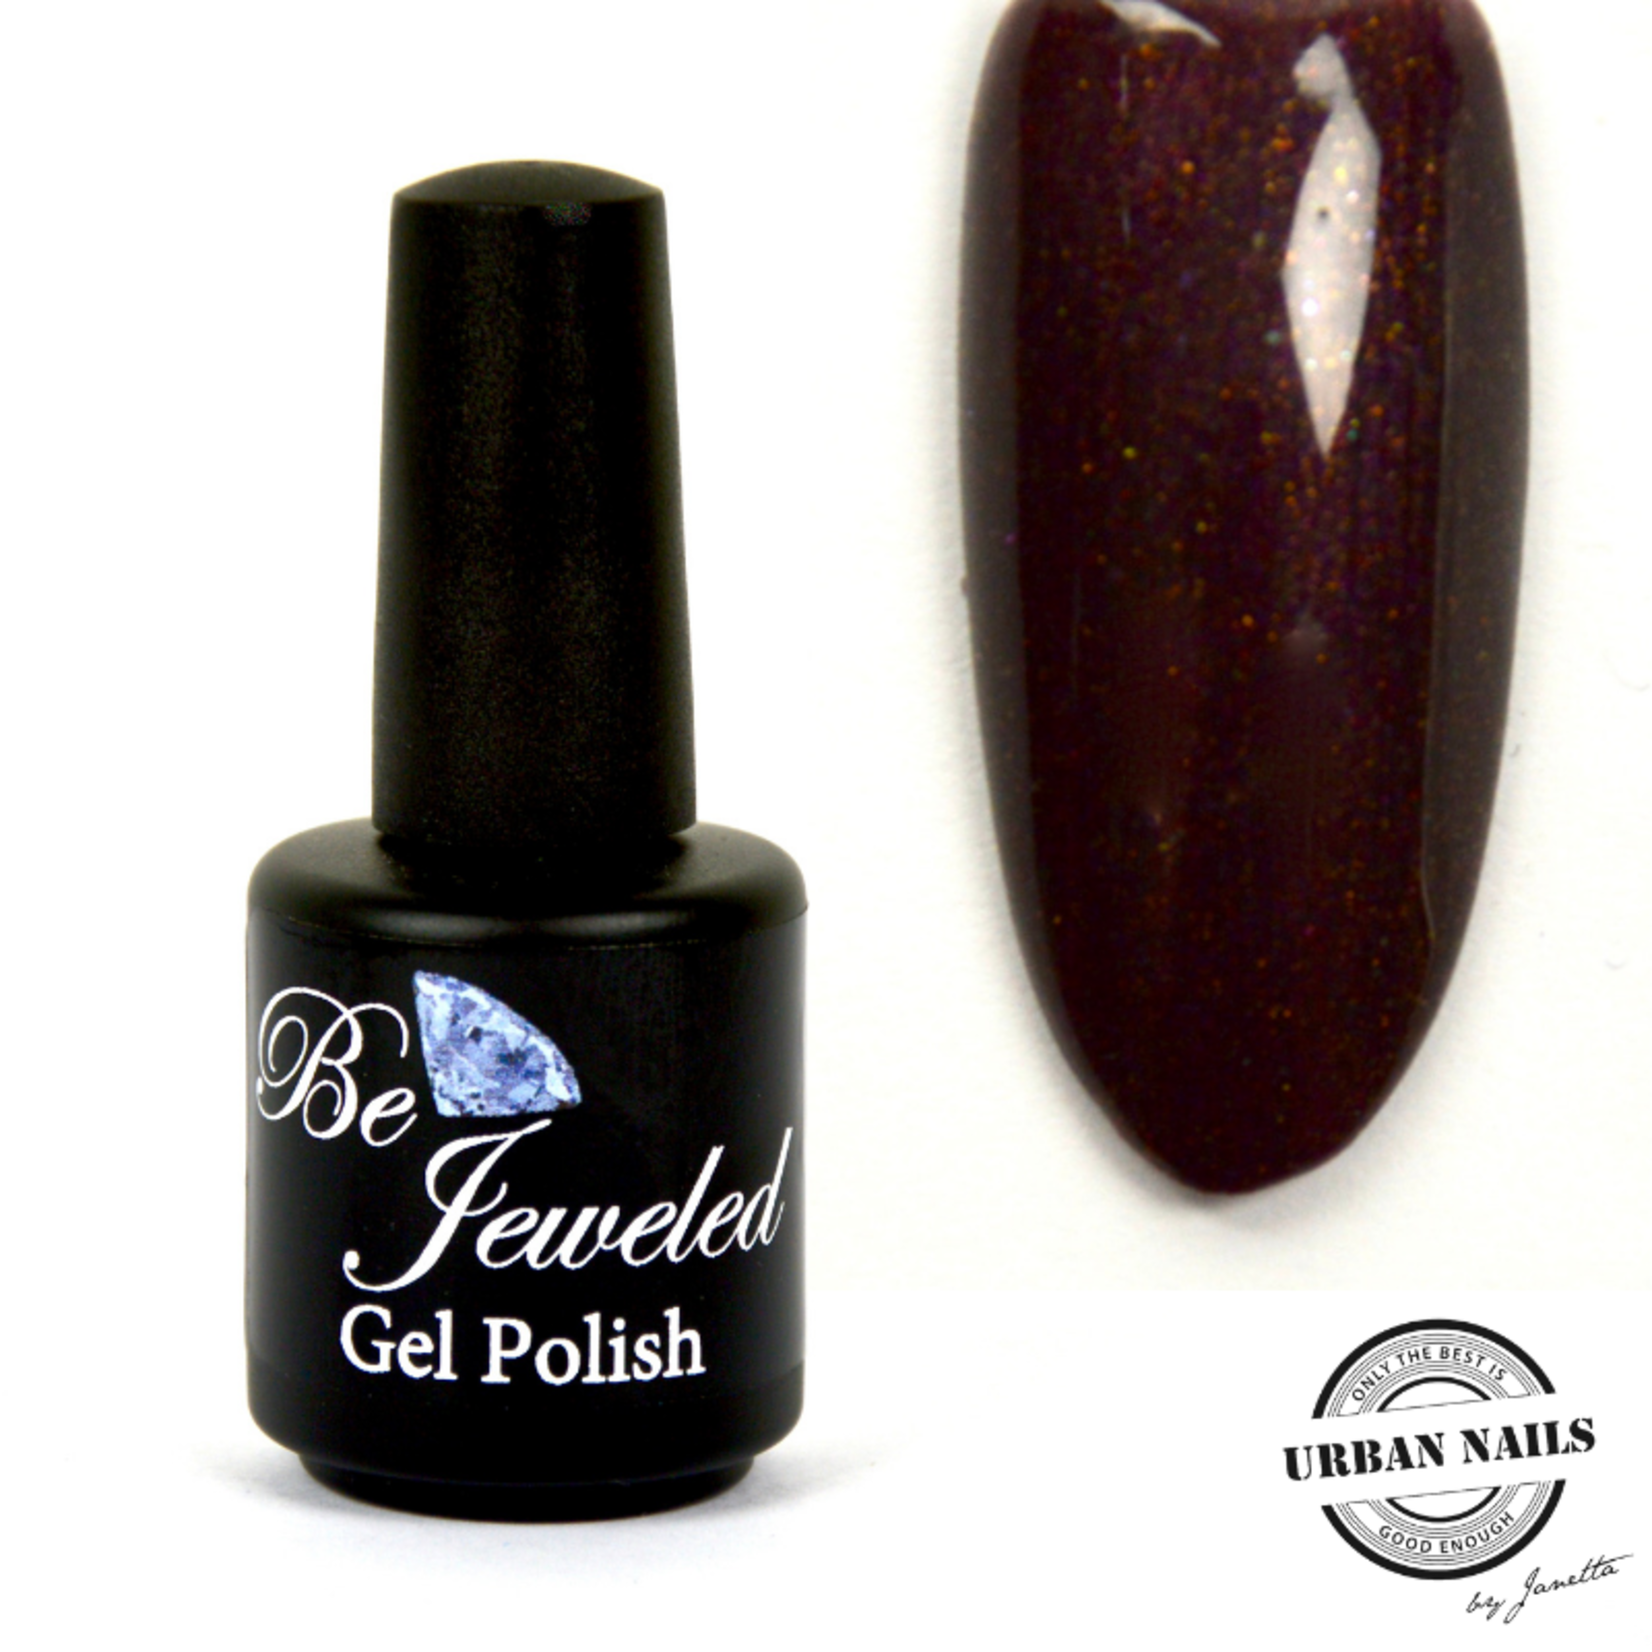 Urban Nails Be Jeweled Gelpolish 142 Diep Bruin Shimmer